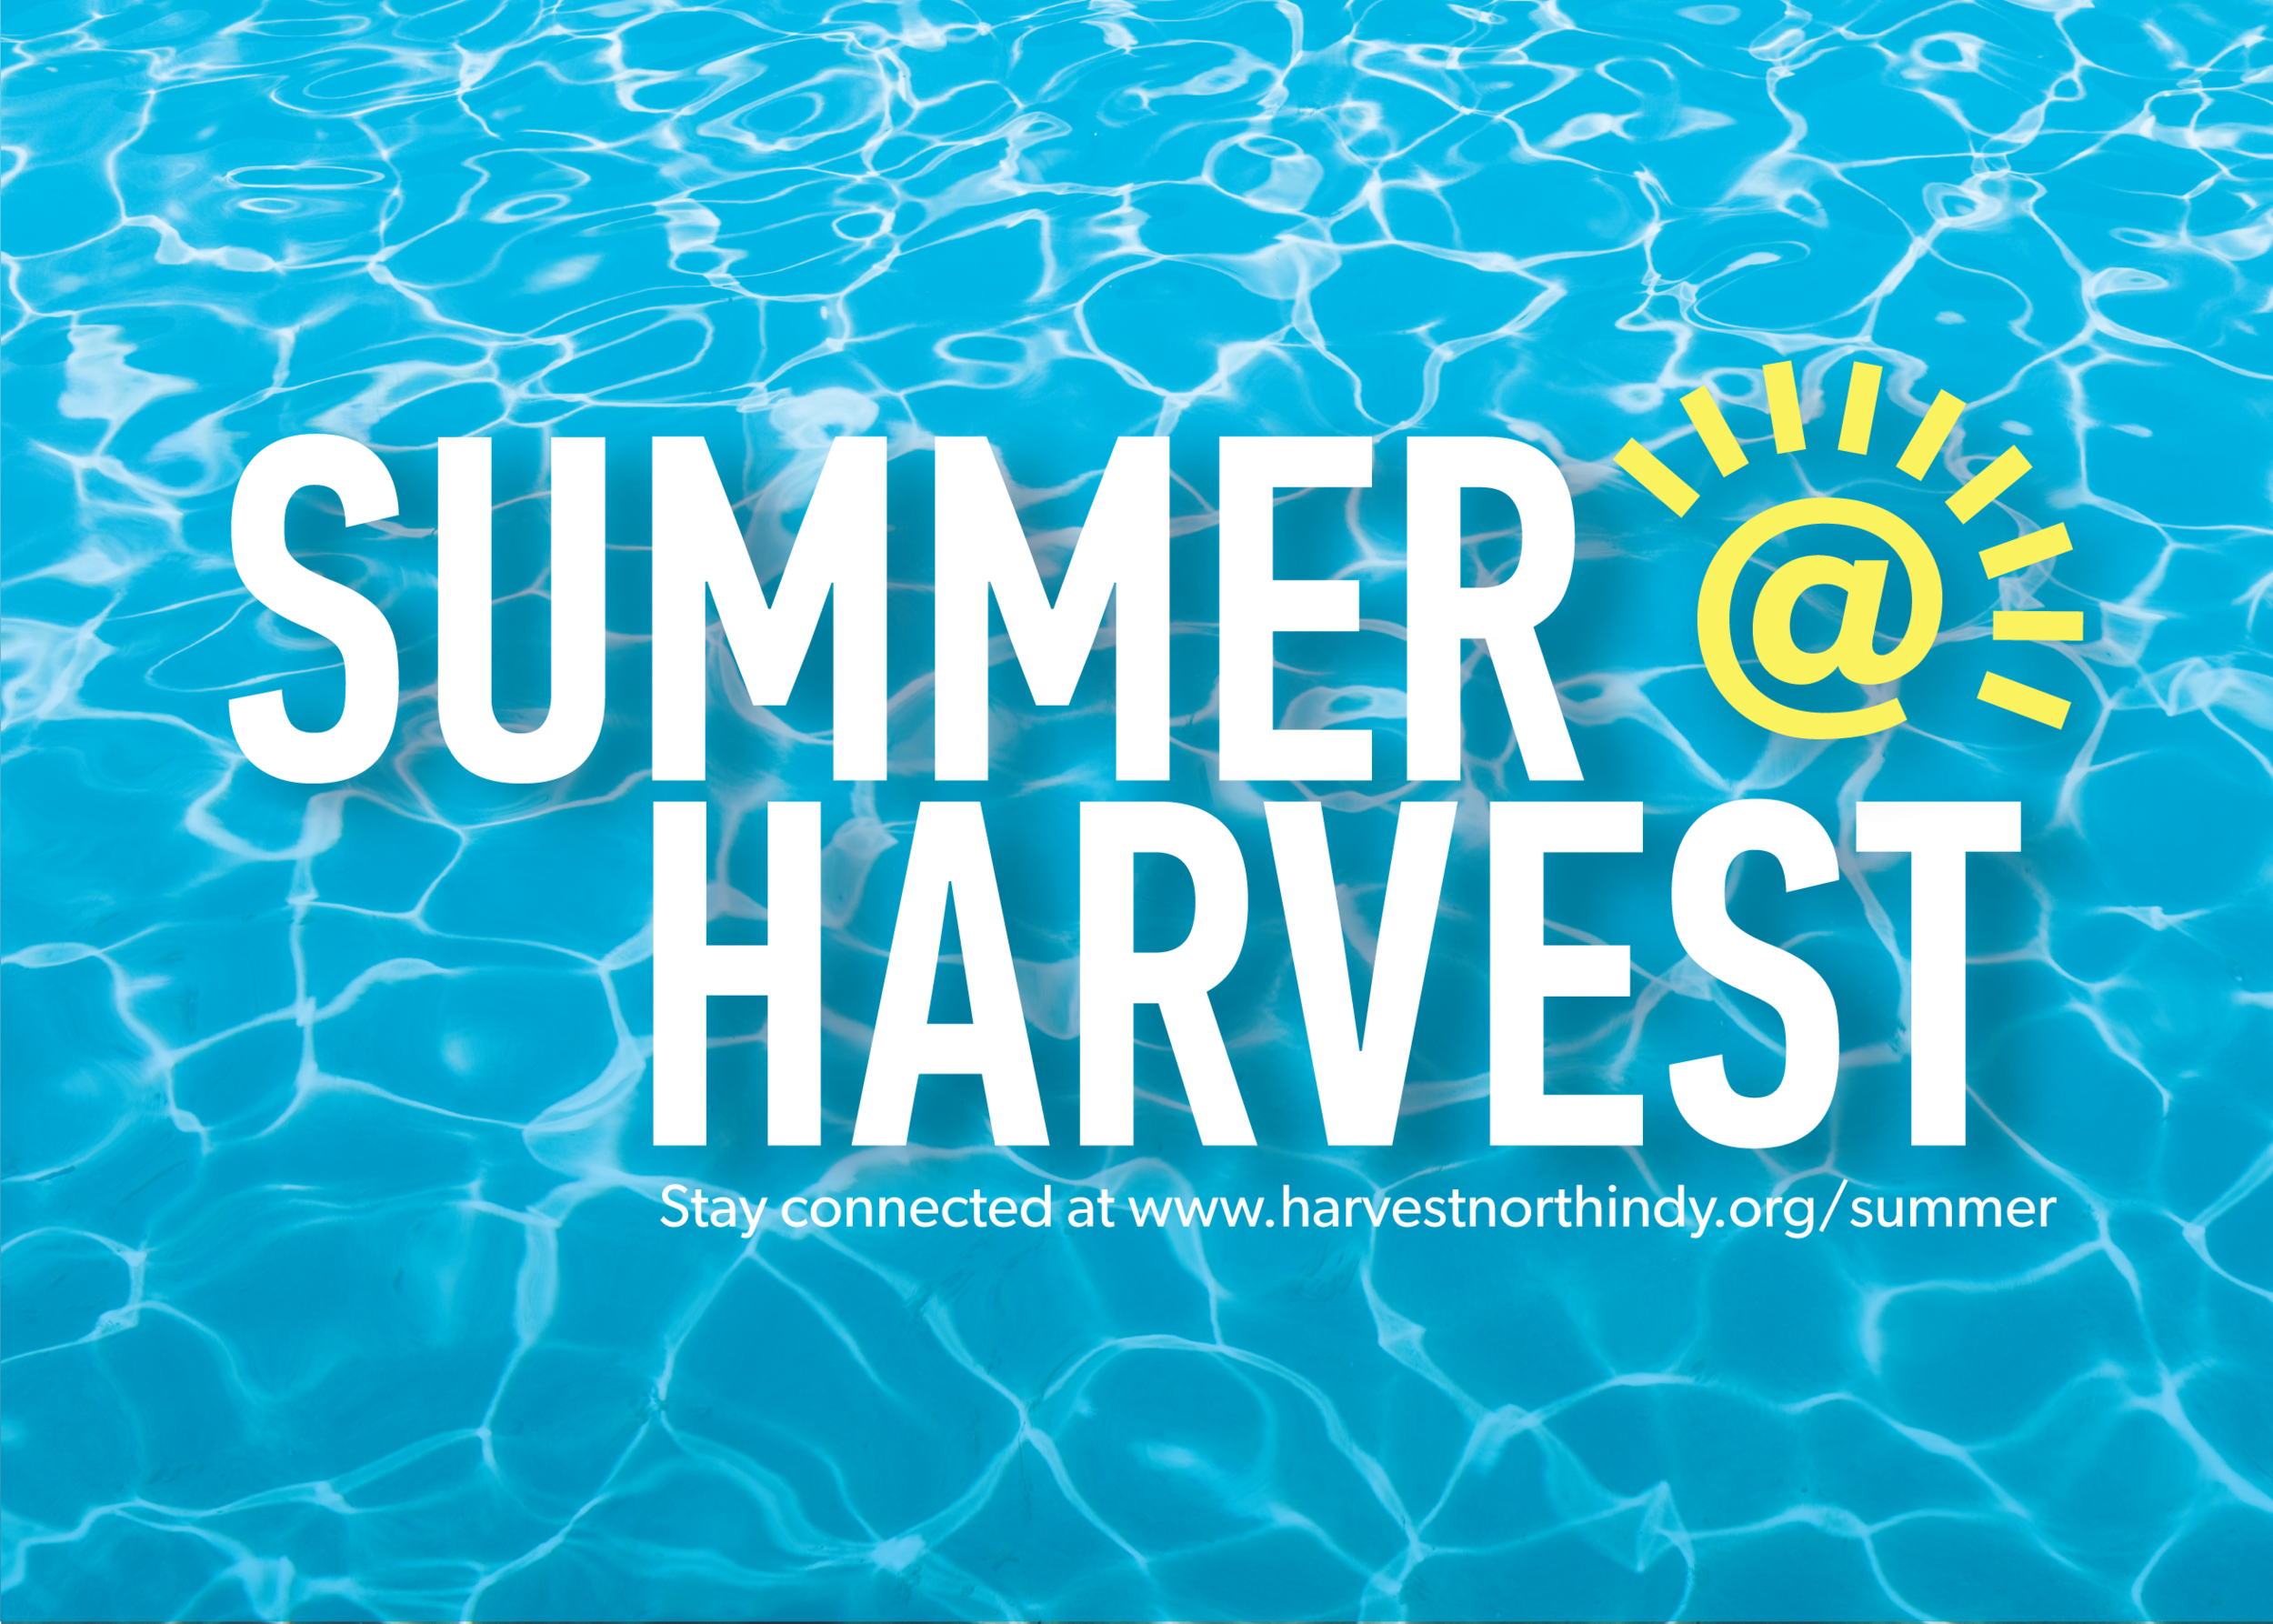 summer-at-harvest_FINAL-01.png